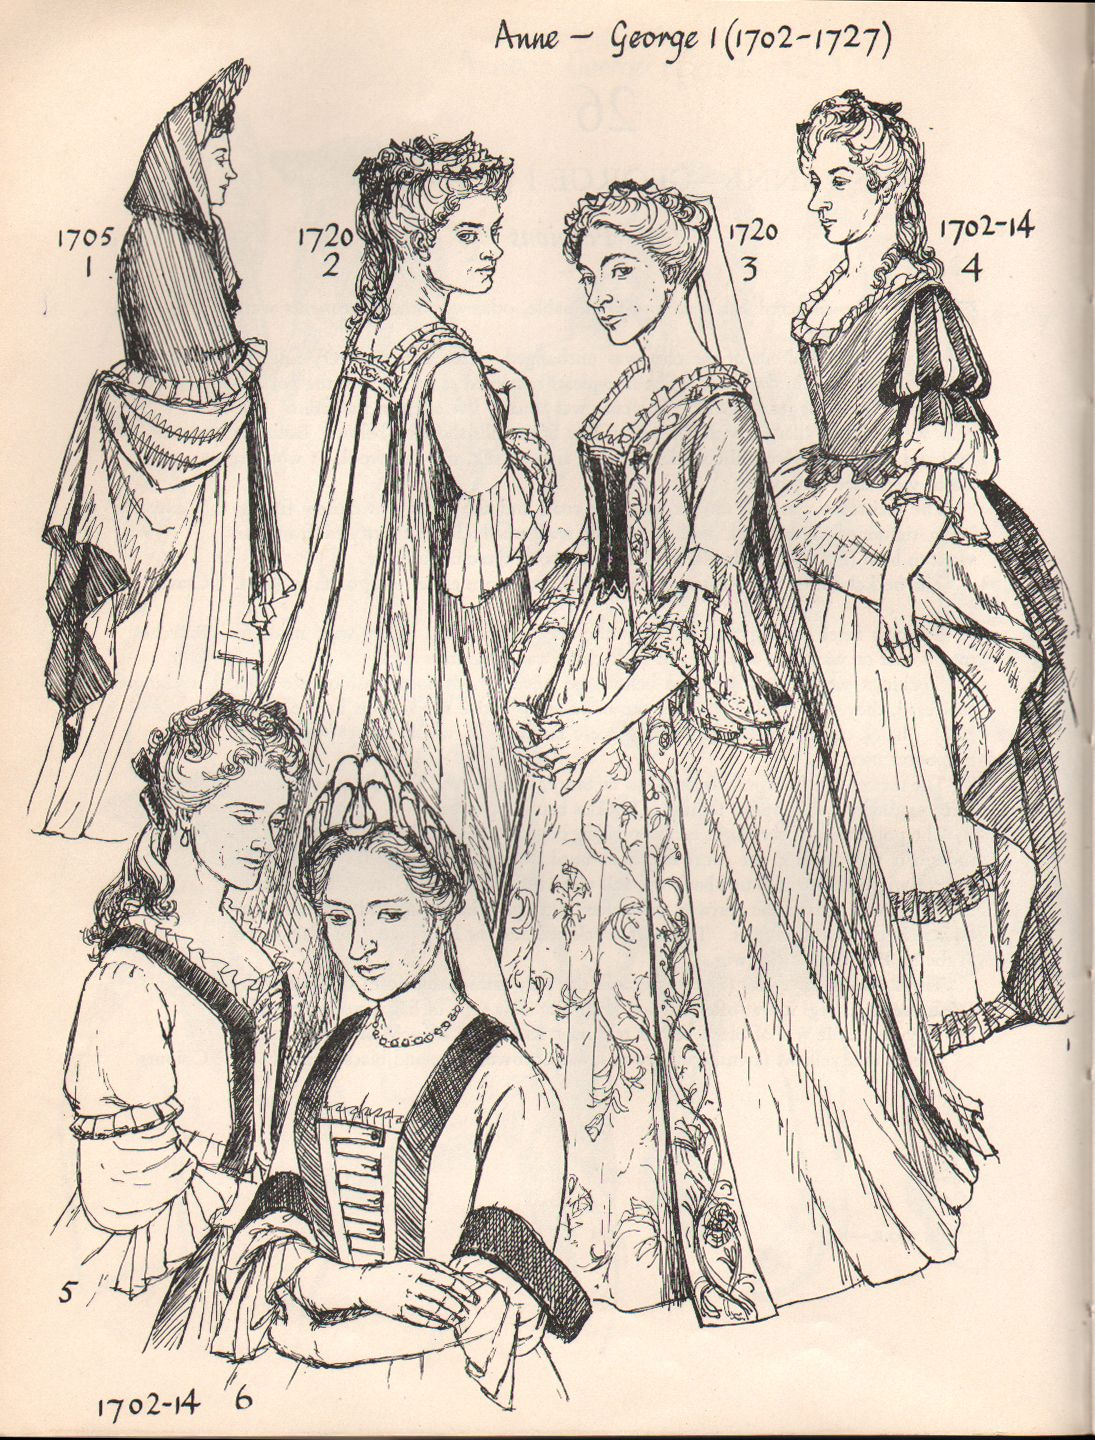 early 18th century womens clothing Early american costume by edward warwick and henry c pitz with illustrations by the authors  18th century clothing resources revolutionary war costuming  early textiles cherry dawson, milliner 1770 men's clothing layers 1770 women's clothing layers 1770 girl's clothing layers 1700 women's clothing layers 1700 men's clothing layers.